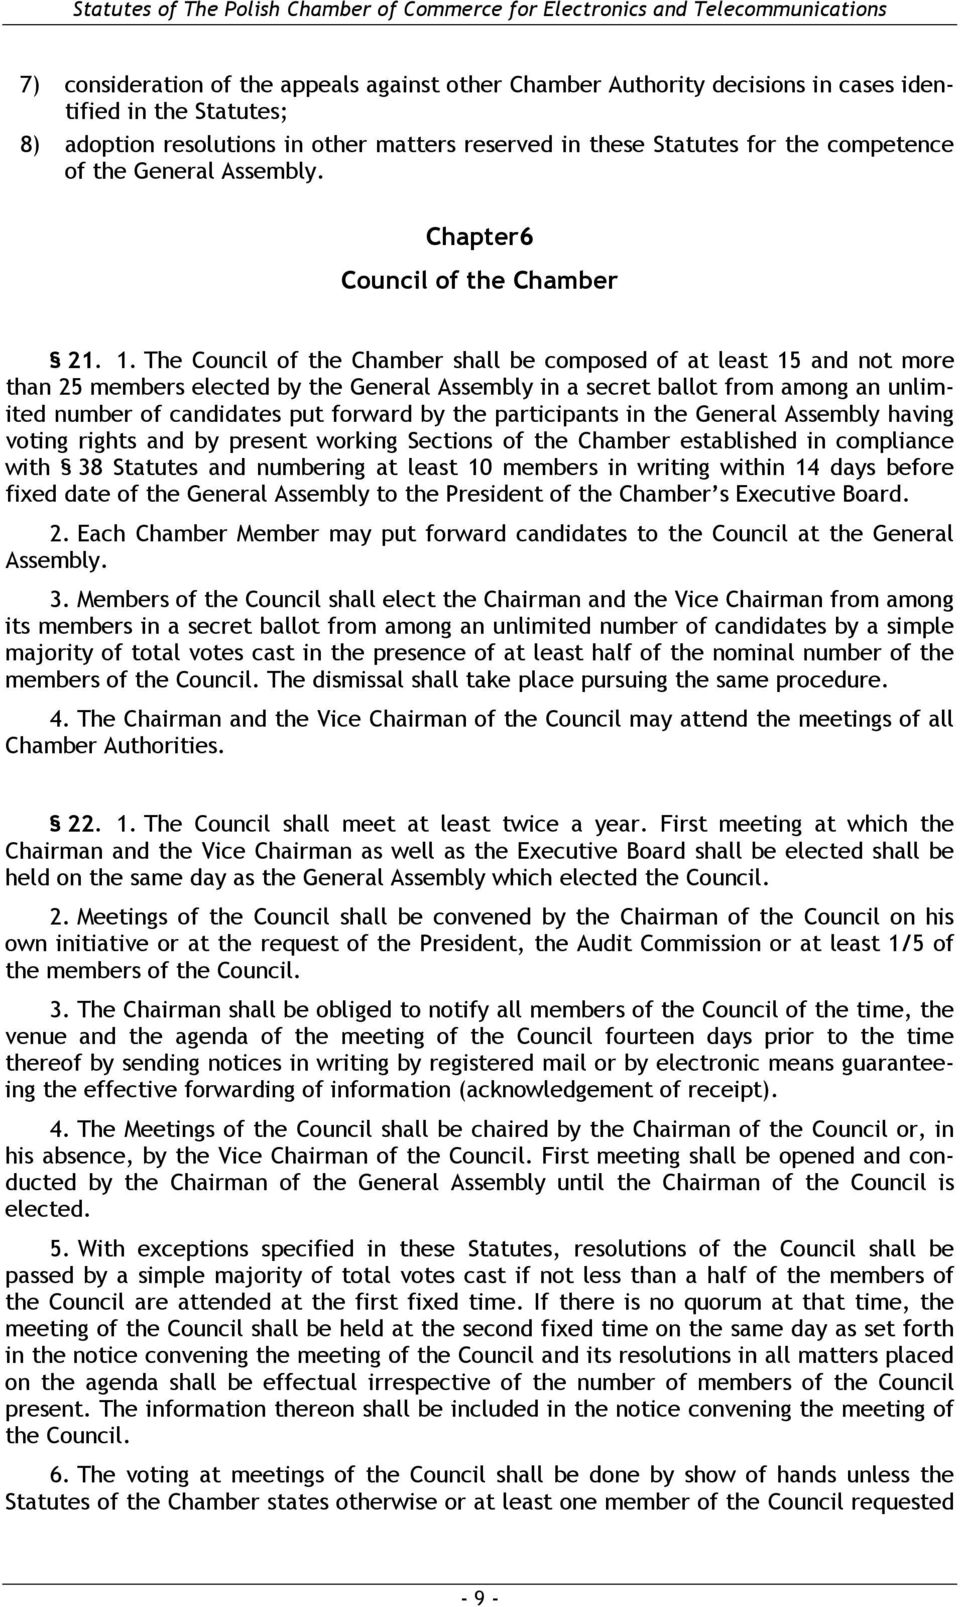 The Council of the Chamber shall be composed of at least 15 and not more than 25 members elected by the General Assembly in a secret ballot from among an unlimited number of candidates put forward by